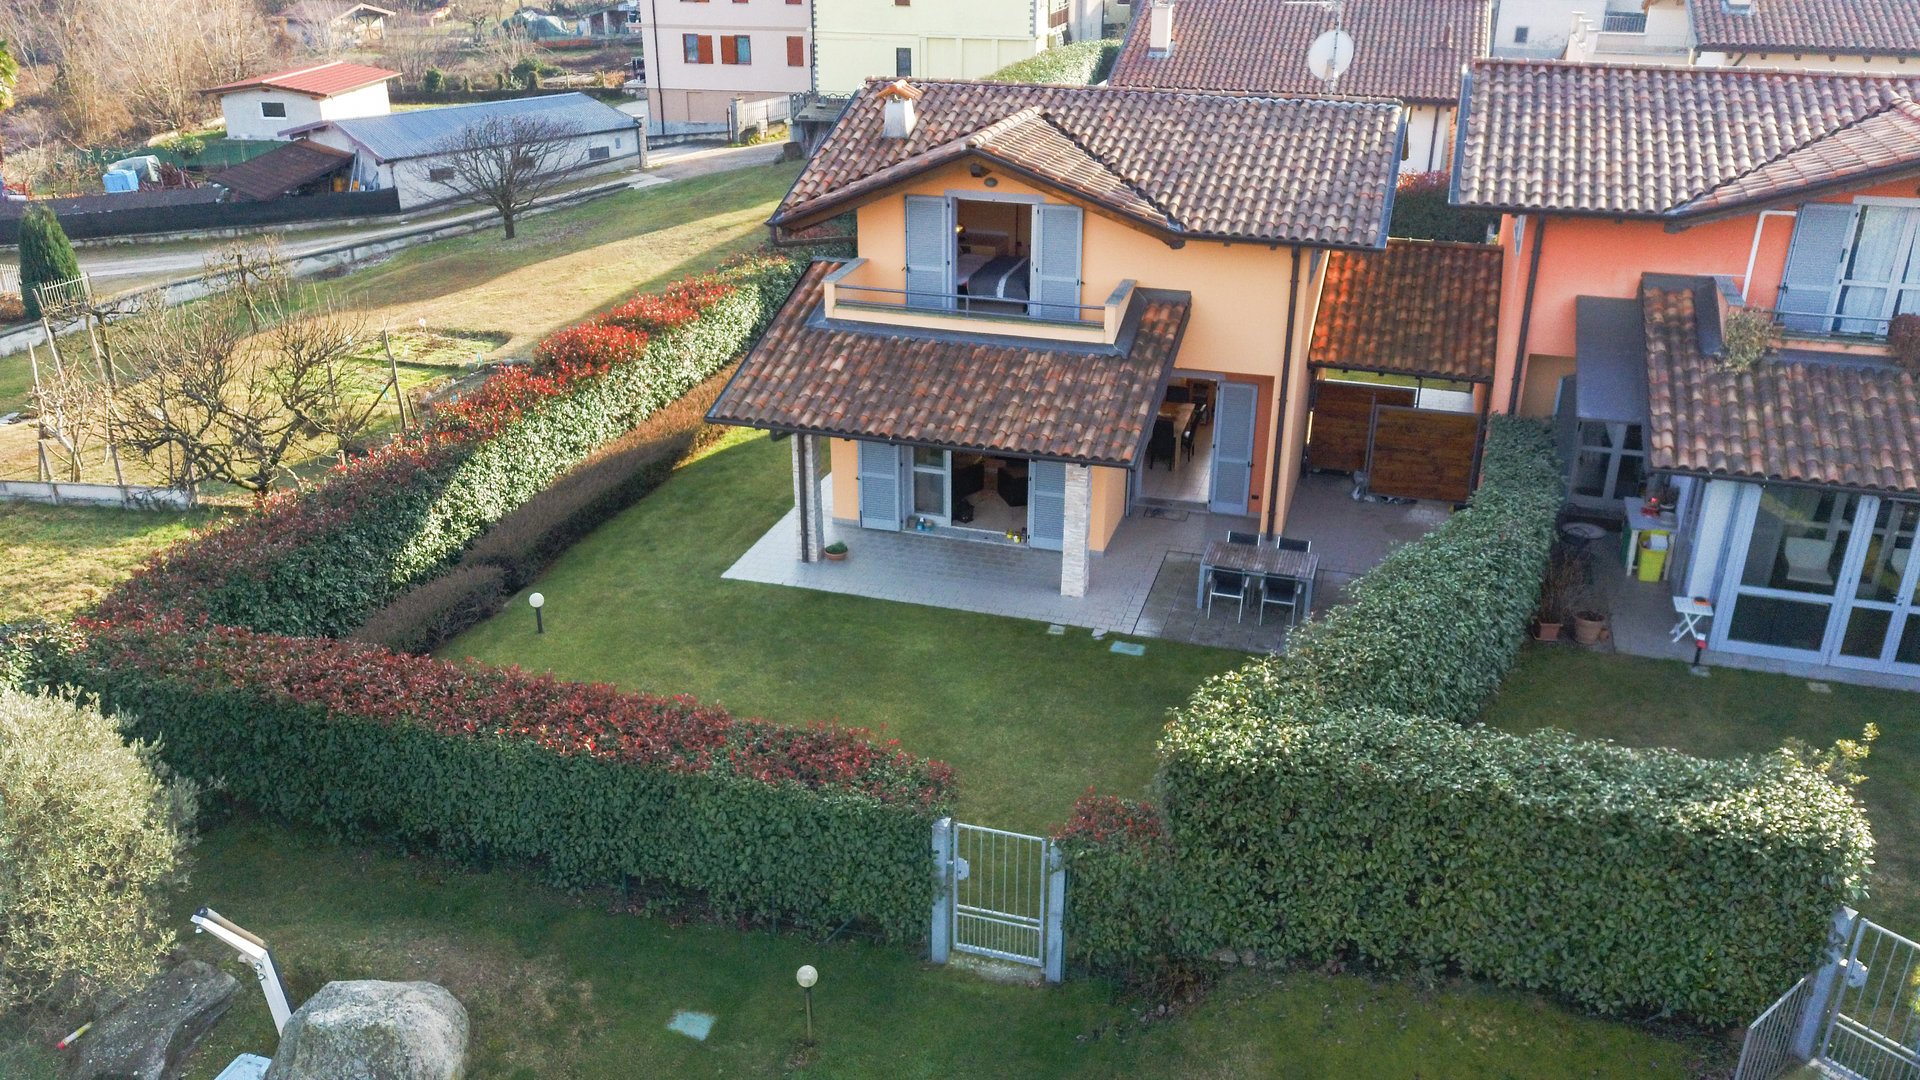 Villa for sale in a residence with swimming pool in Paruzzaro - villa with garden